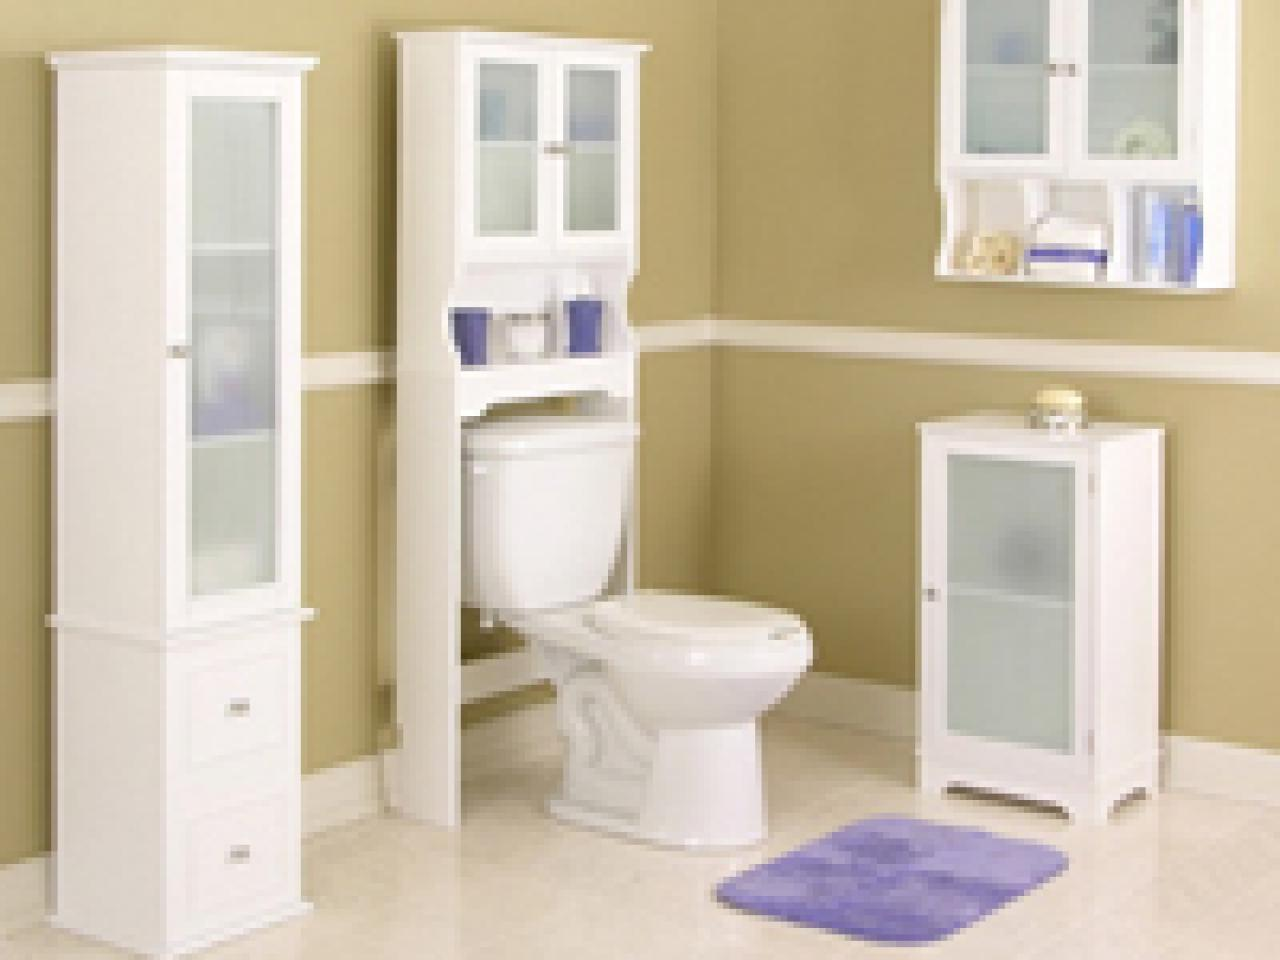 LowCost Tips For Reorganizing The Bathroom HGTV - Low cost bathrooms